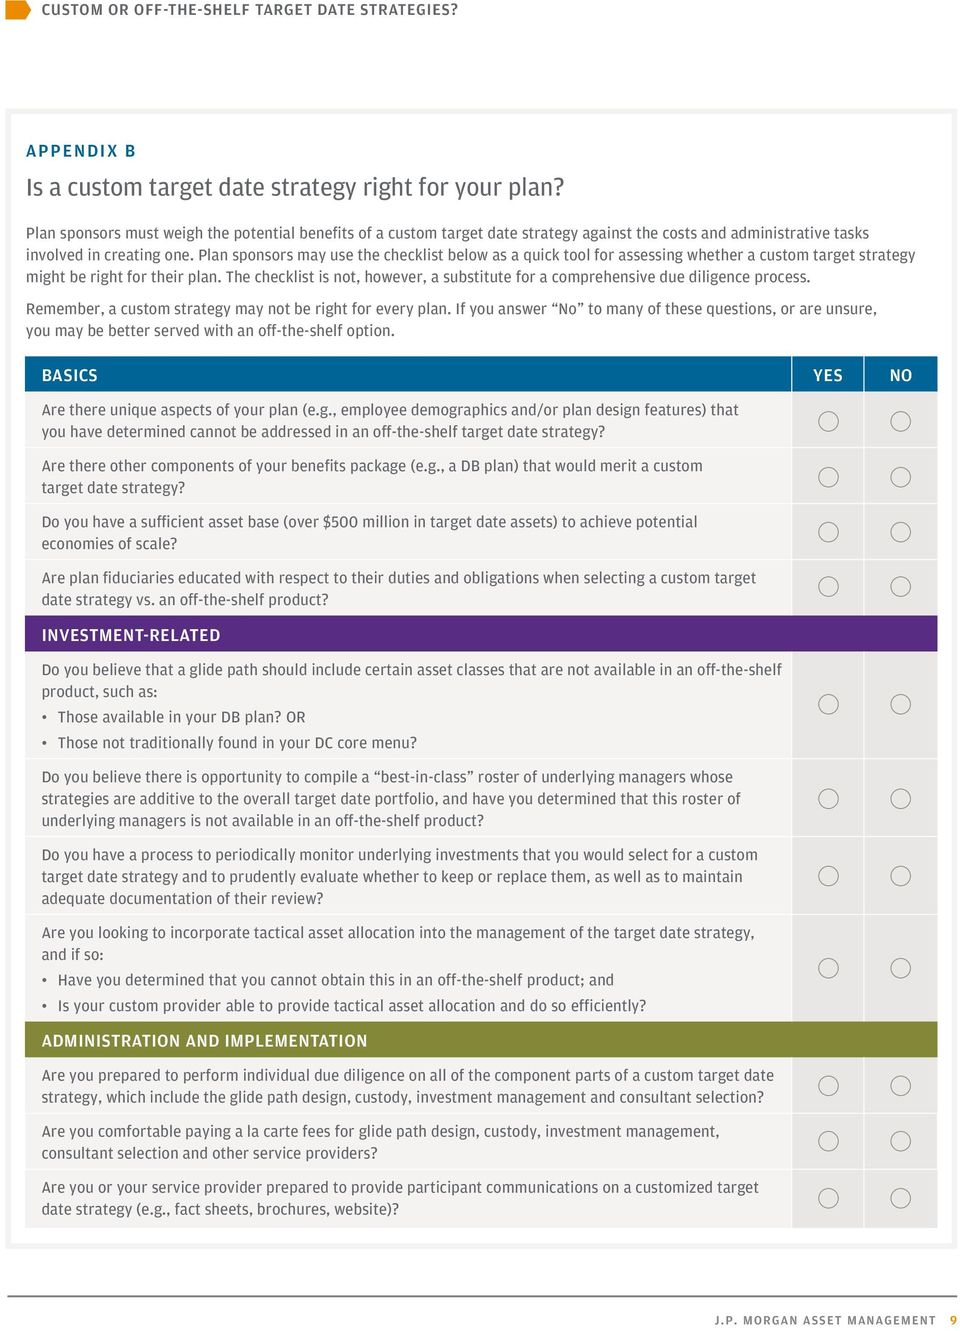 Plan sponsors may use the checklist below as a quick tool for assessing whether a custom target strategy might be right for their plan.